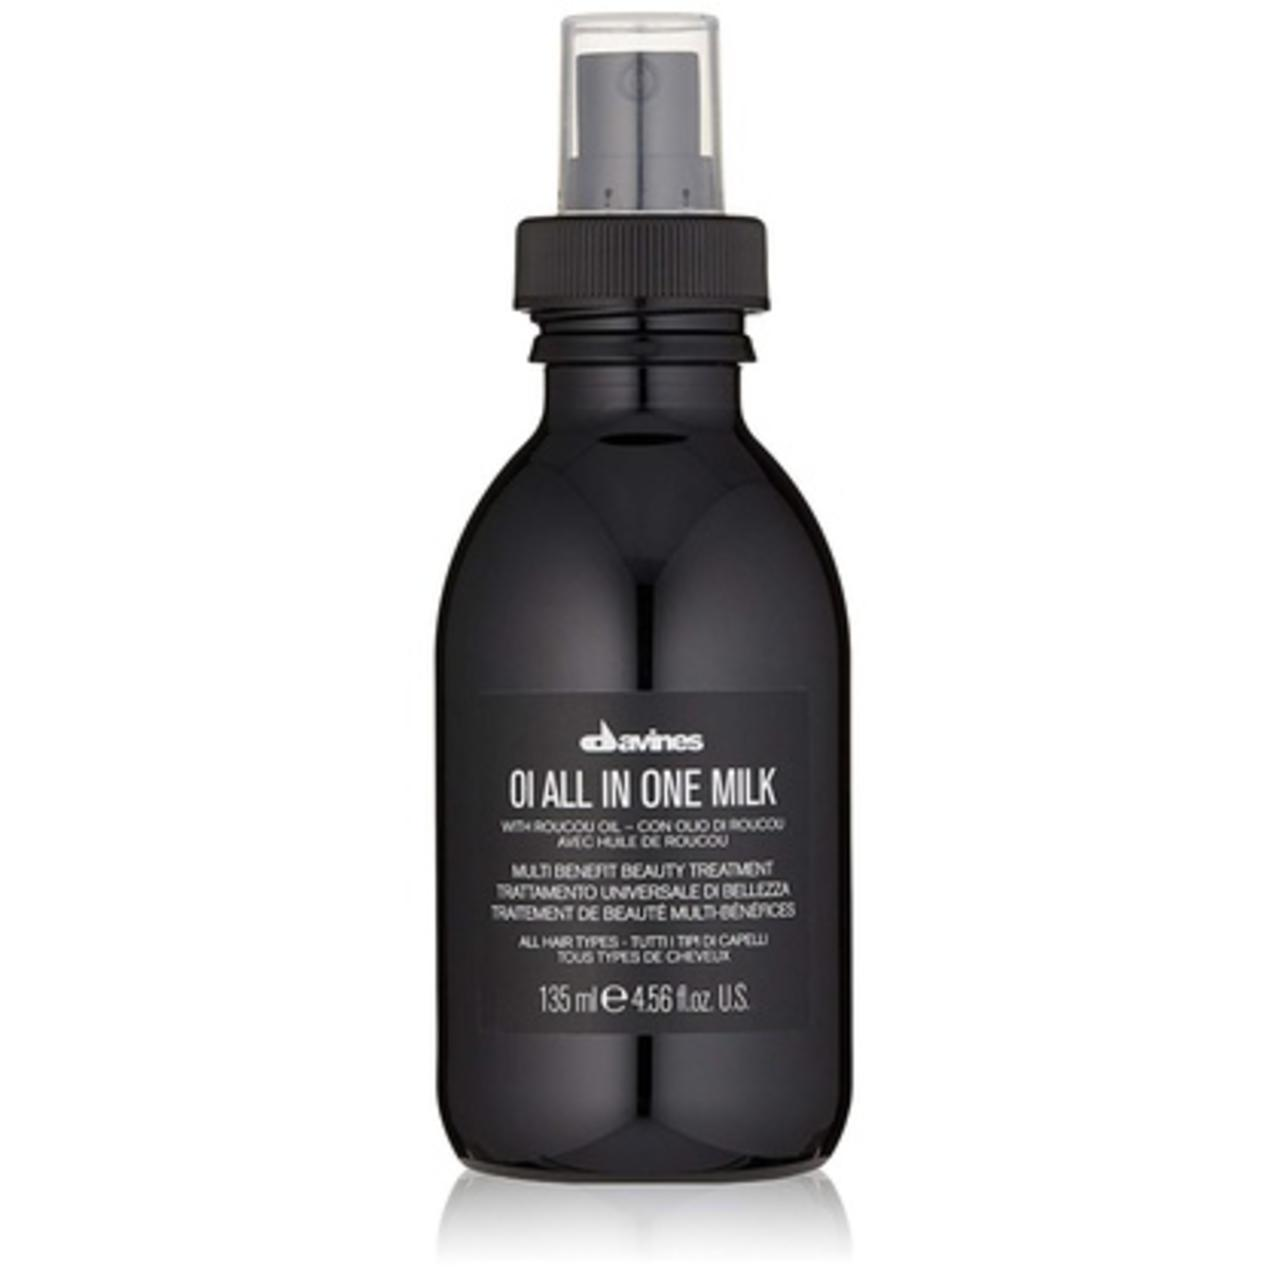 Davines OI All In One Milk, 4.290 kr.